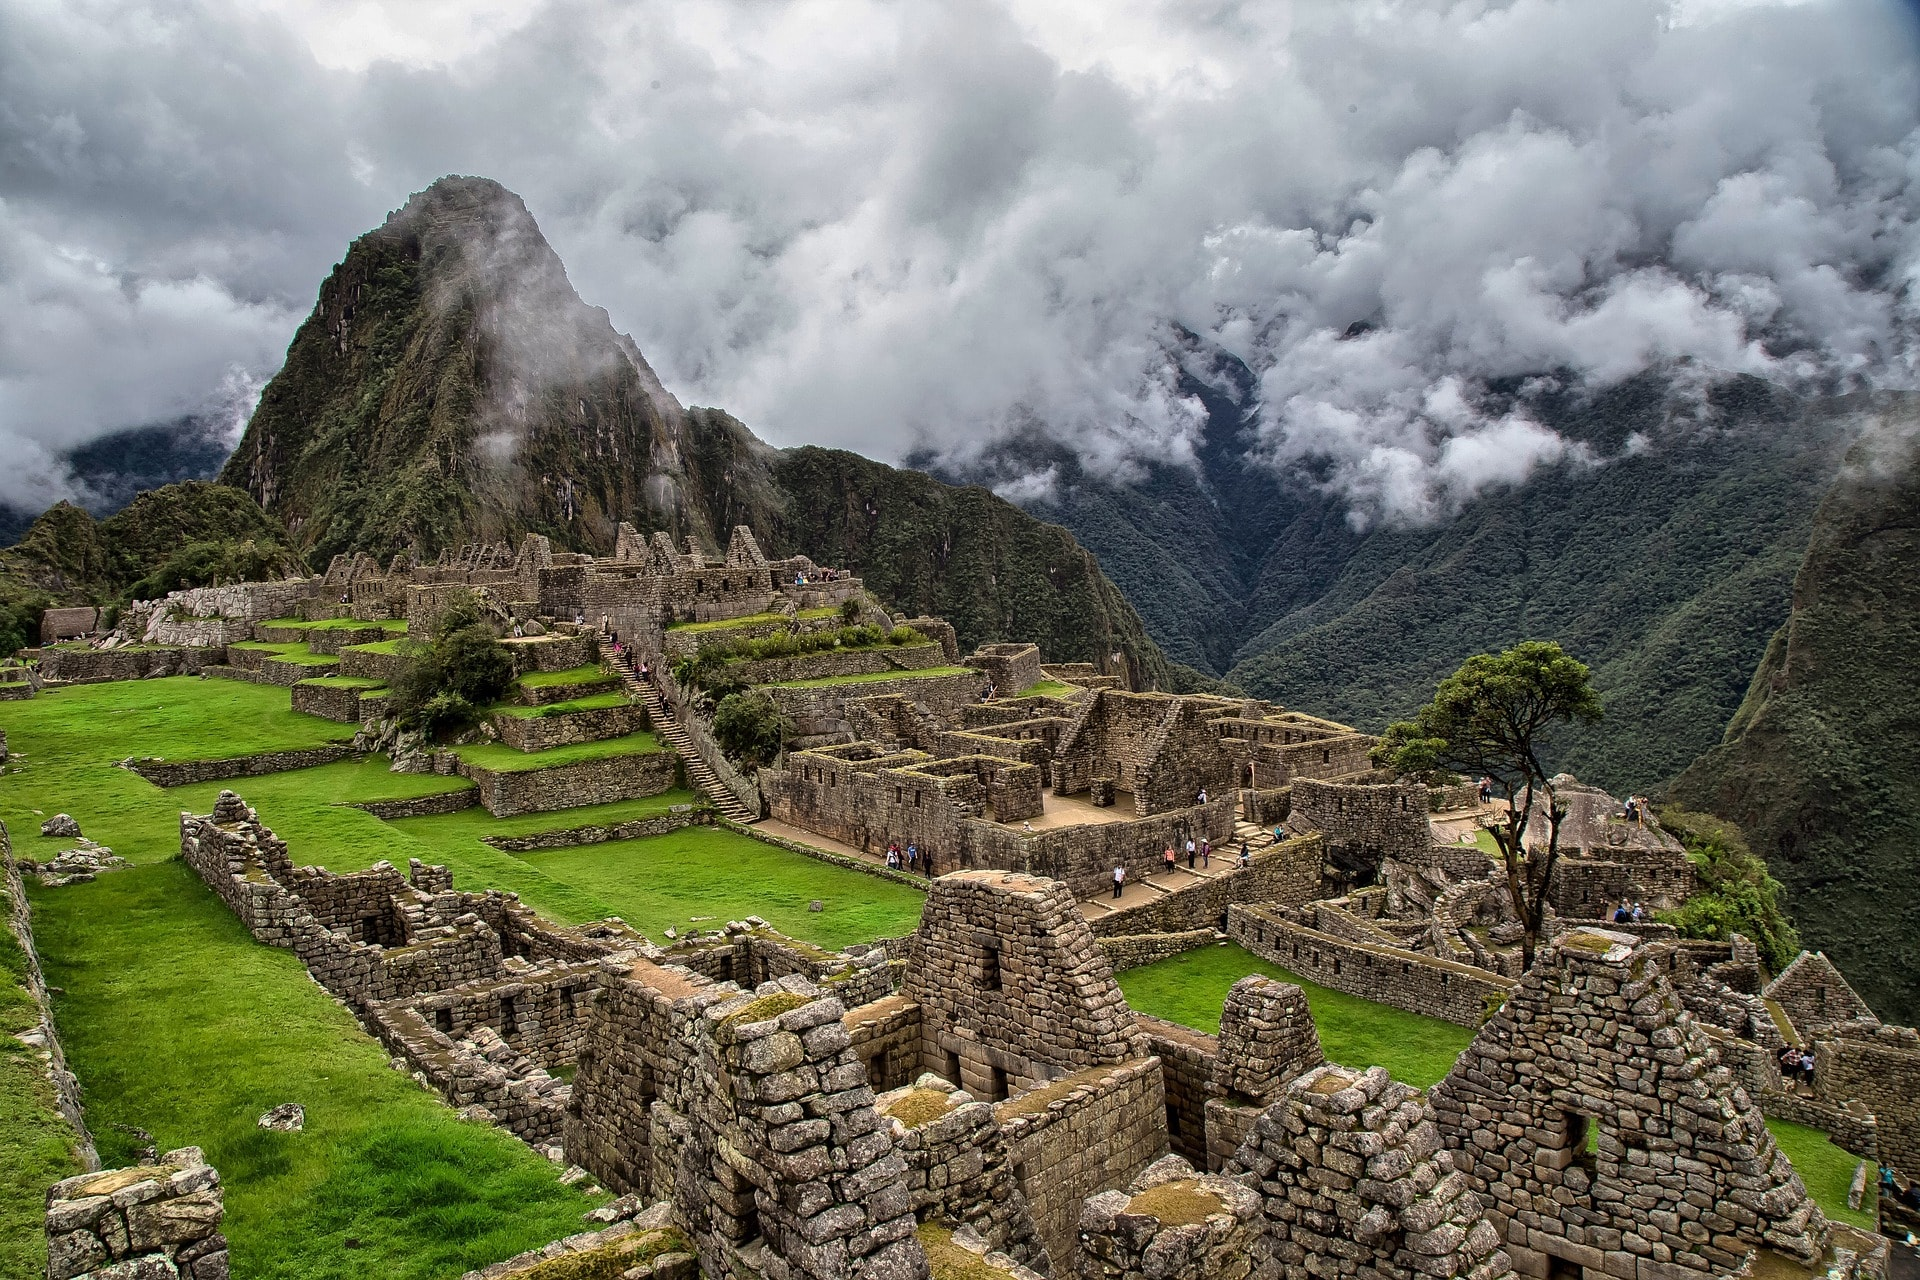 An image of Machu Picchu in Peru, where many backpackers and travellers visit on their gap year travels